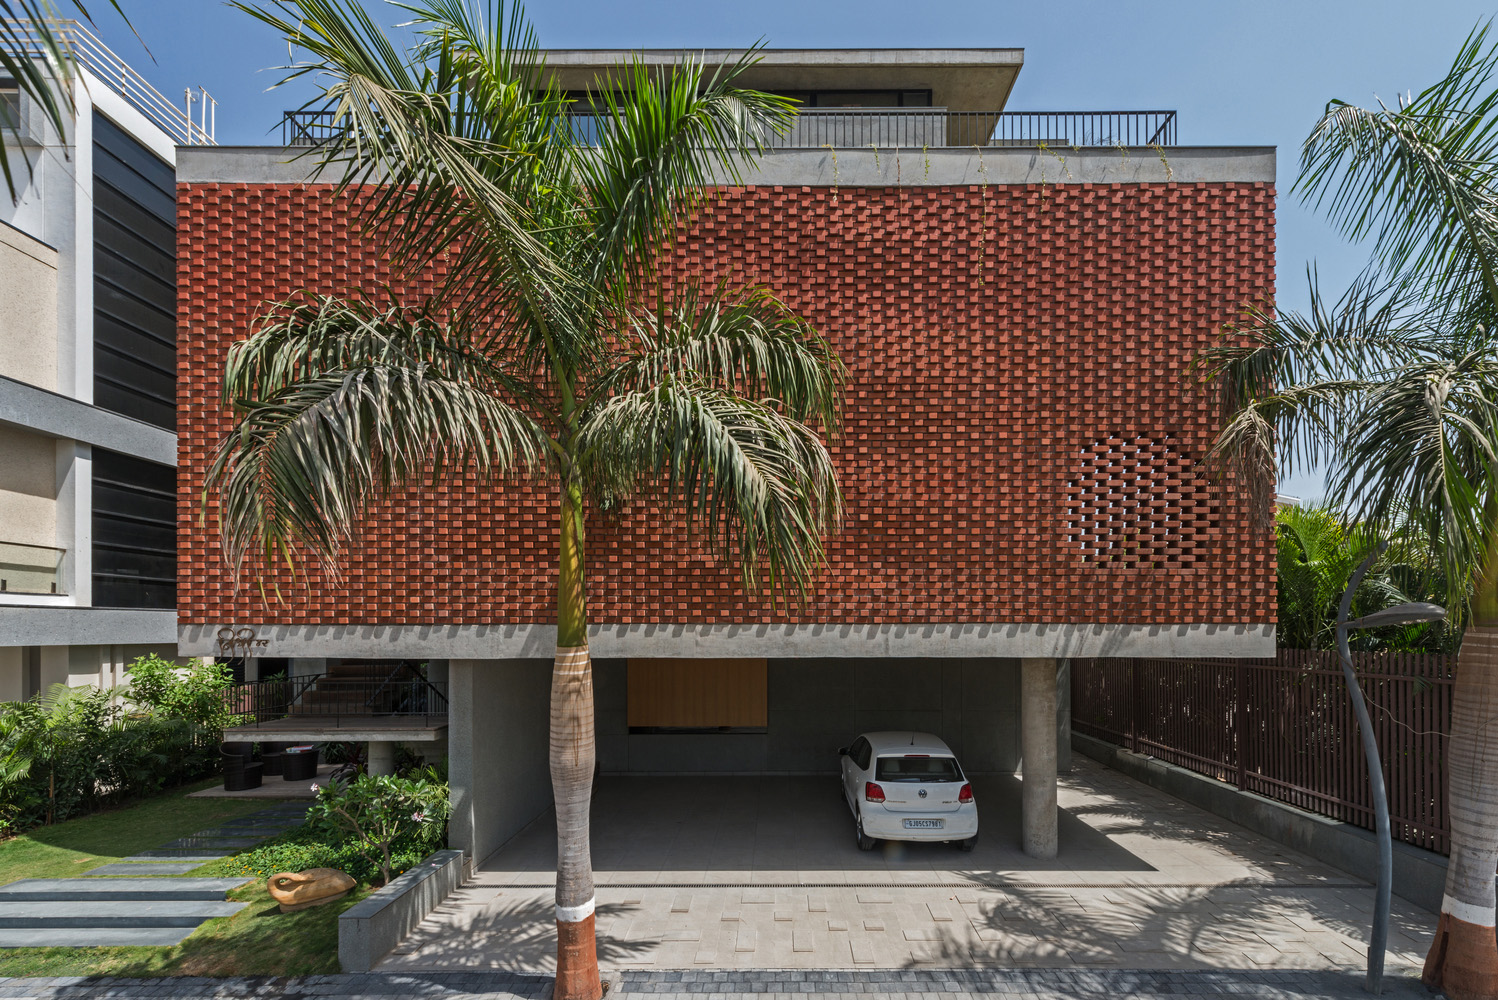 Brick Curtain House (Índia)/ Design Work Group